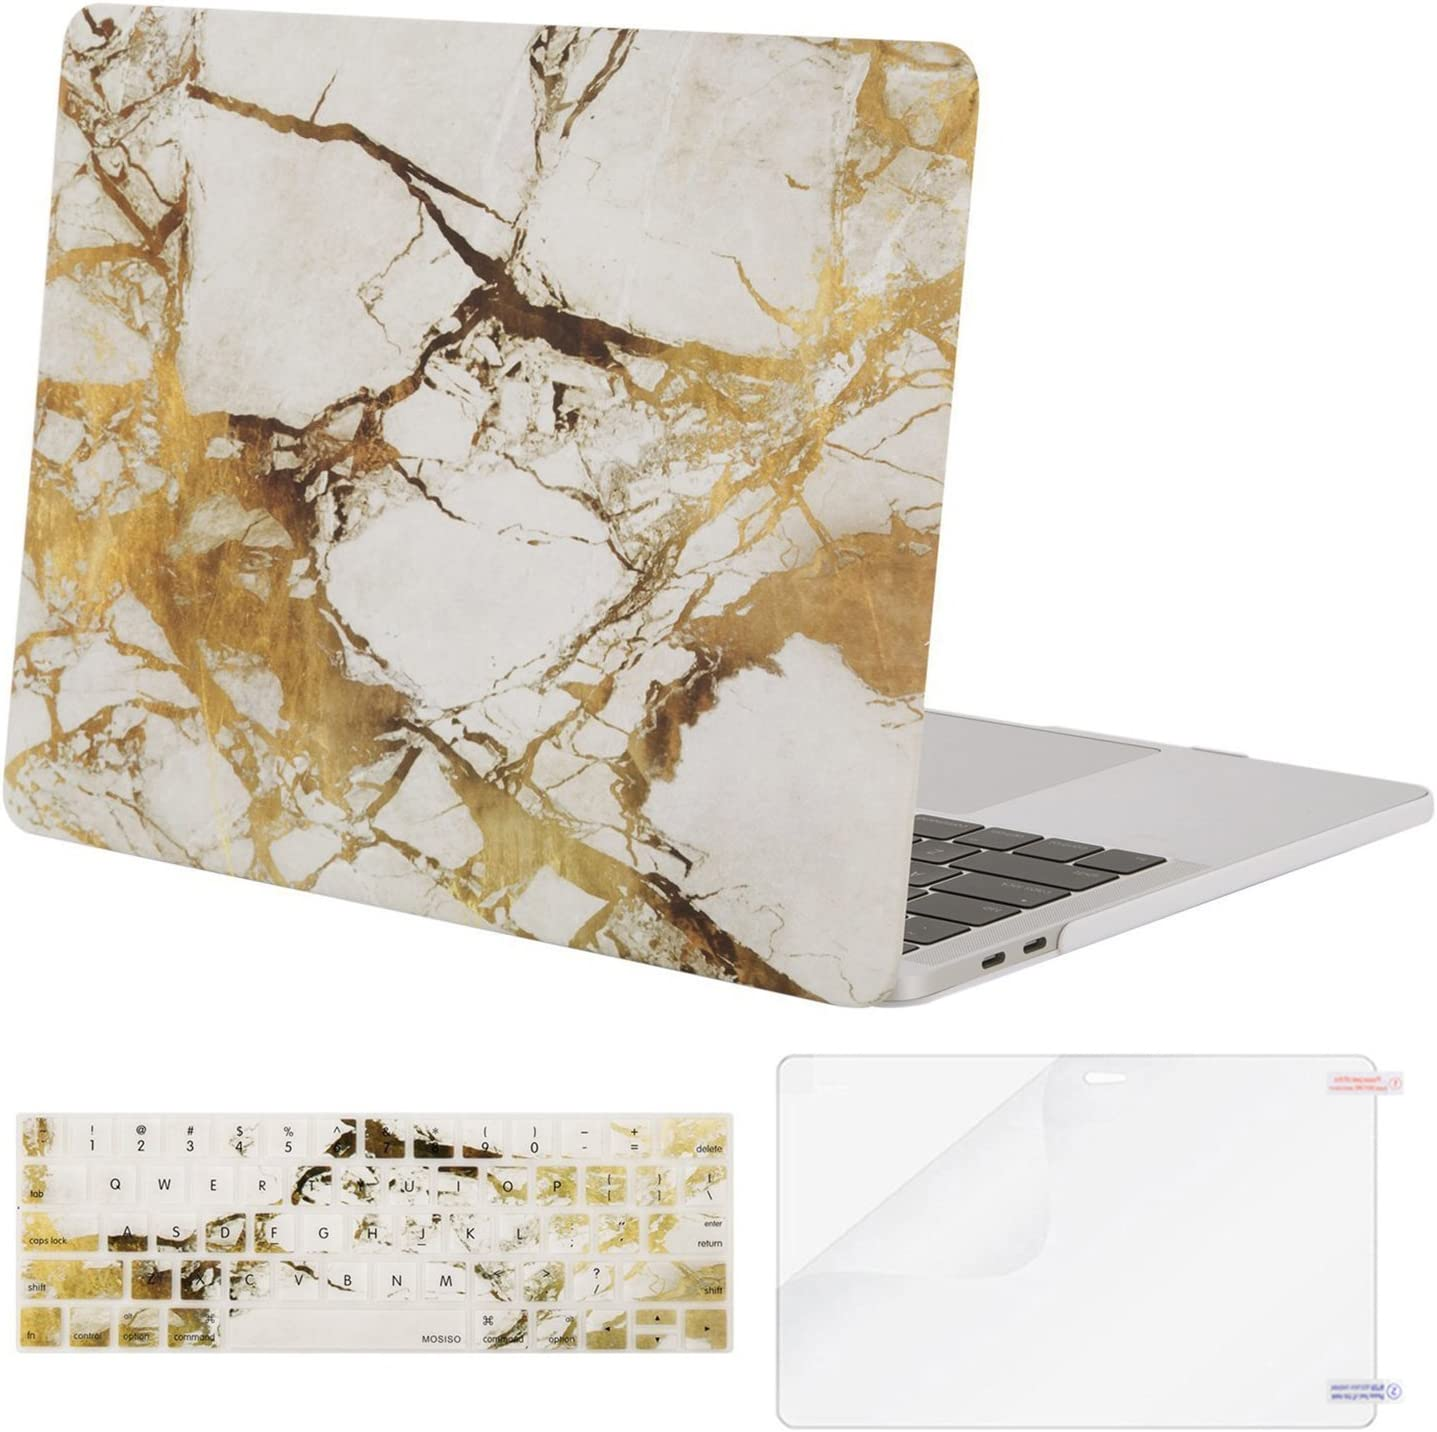 MOSISO MacBook Pro 13 inch Case 2019 2018 2017 2016 Release A2159 A1989 A1706 A1708, Plastic Pattern Hard Shell Case&Keyboard Cover&Screen Protector Compatible with MacBook Pro 13, White Gold Marble